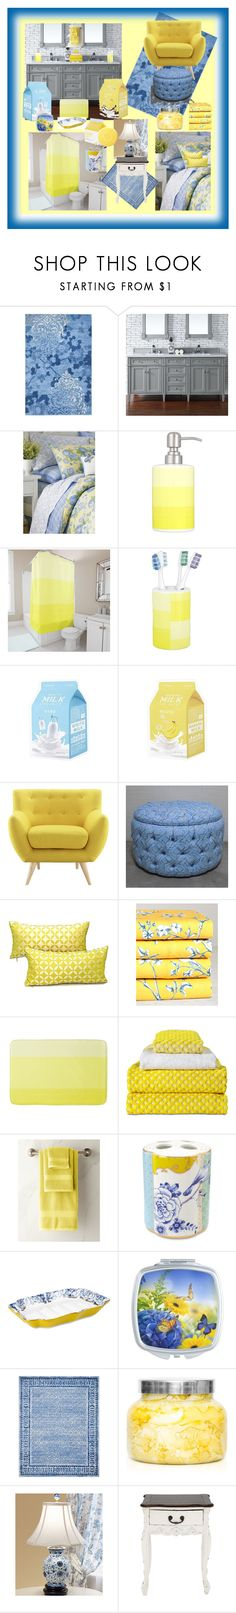 """""""Milk Bed & Bath Retreat"""" by aurorasblueheaven ❤ liked on Polyvore featuring beauty, Safavieh, Laura Ashley, Modway, Whit and Alex, HAY, PiP Studio, Capri Blue and Country Curtains"""